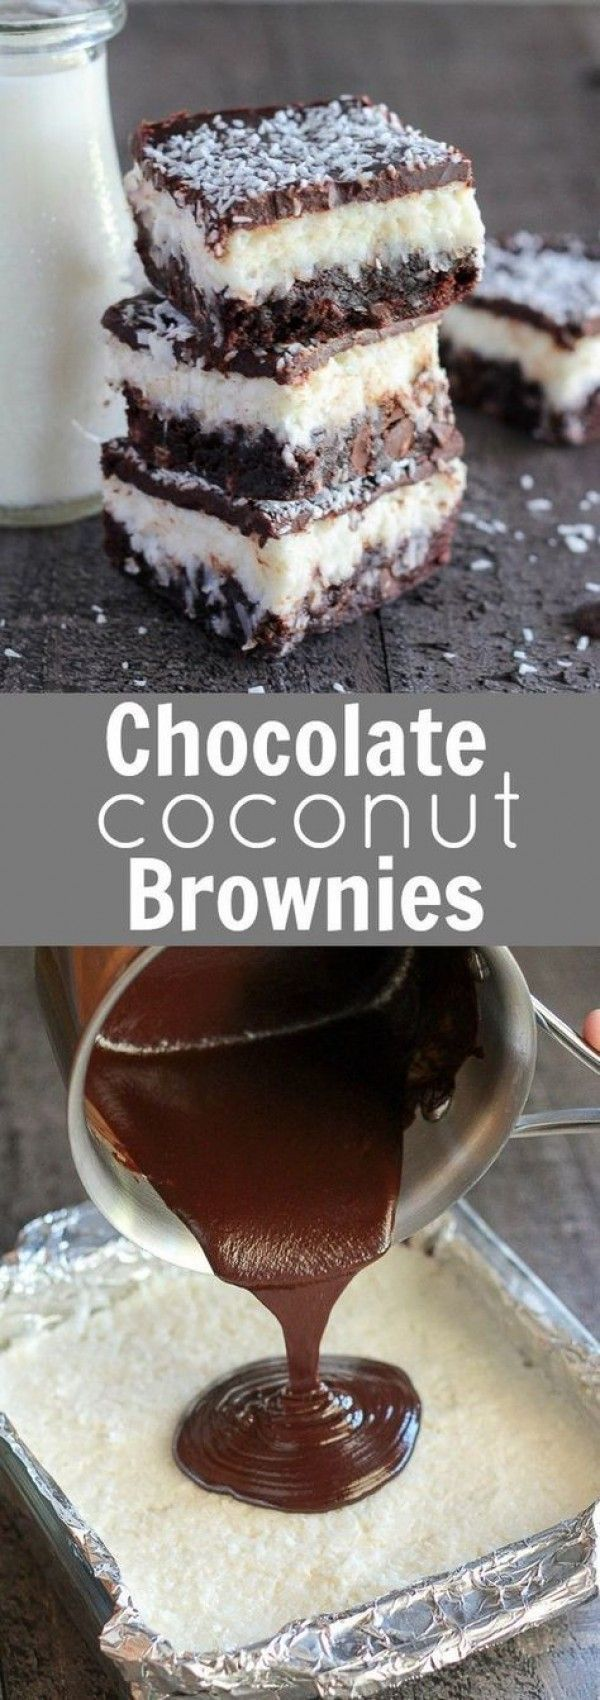 Get the recipe Chocolate Coconut Brownies @recipes_to_go